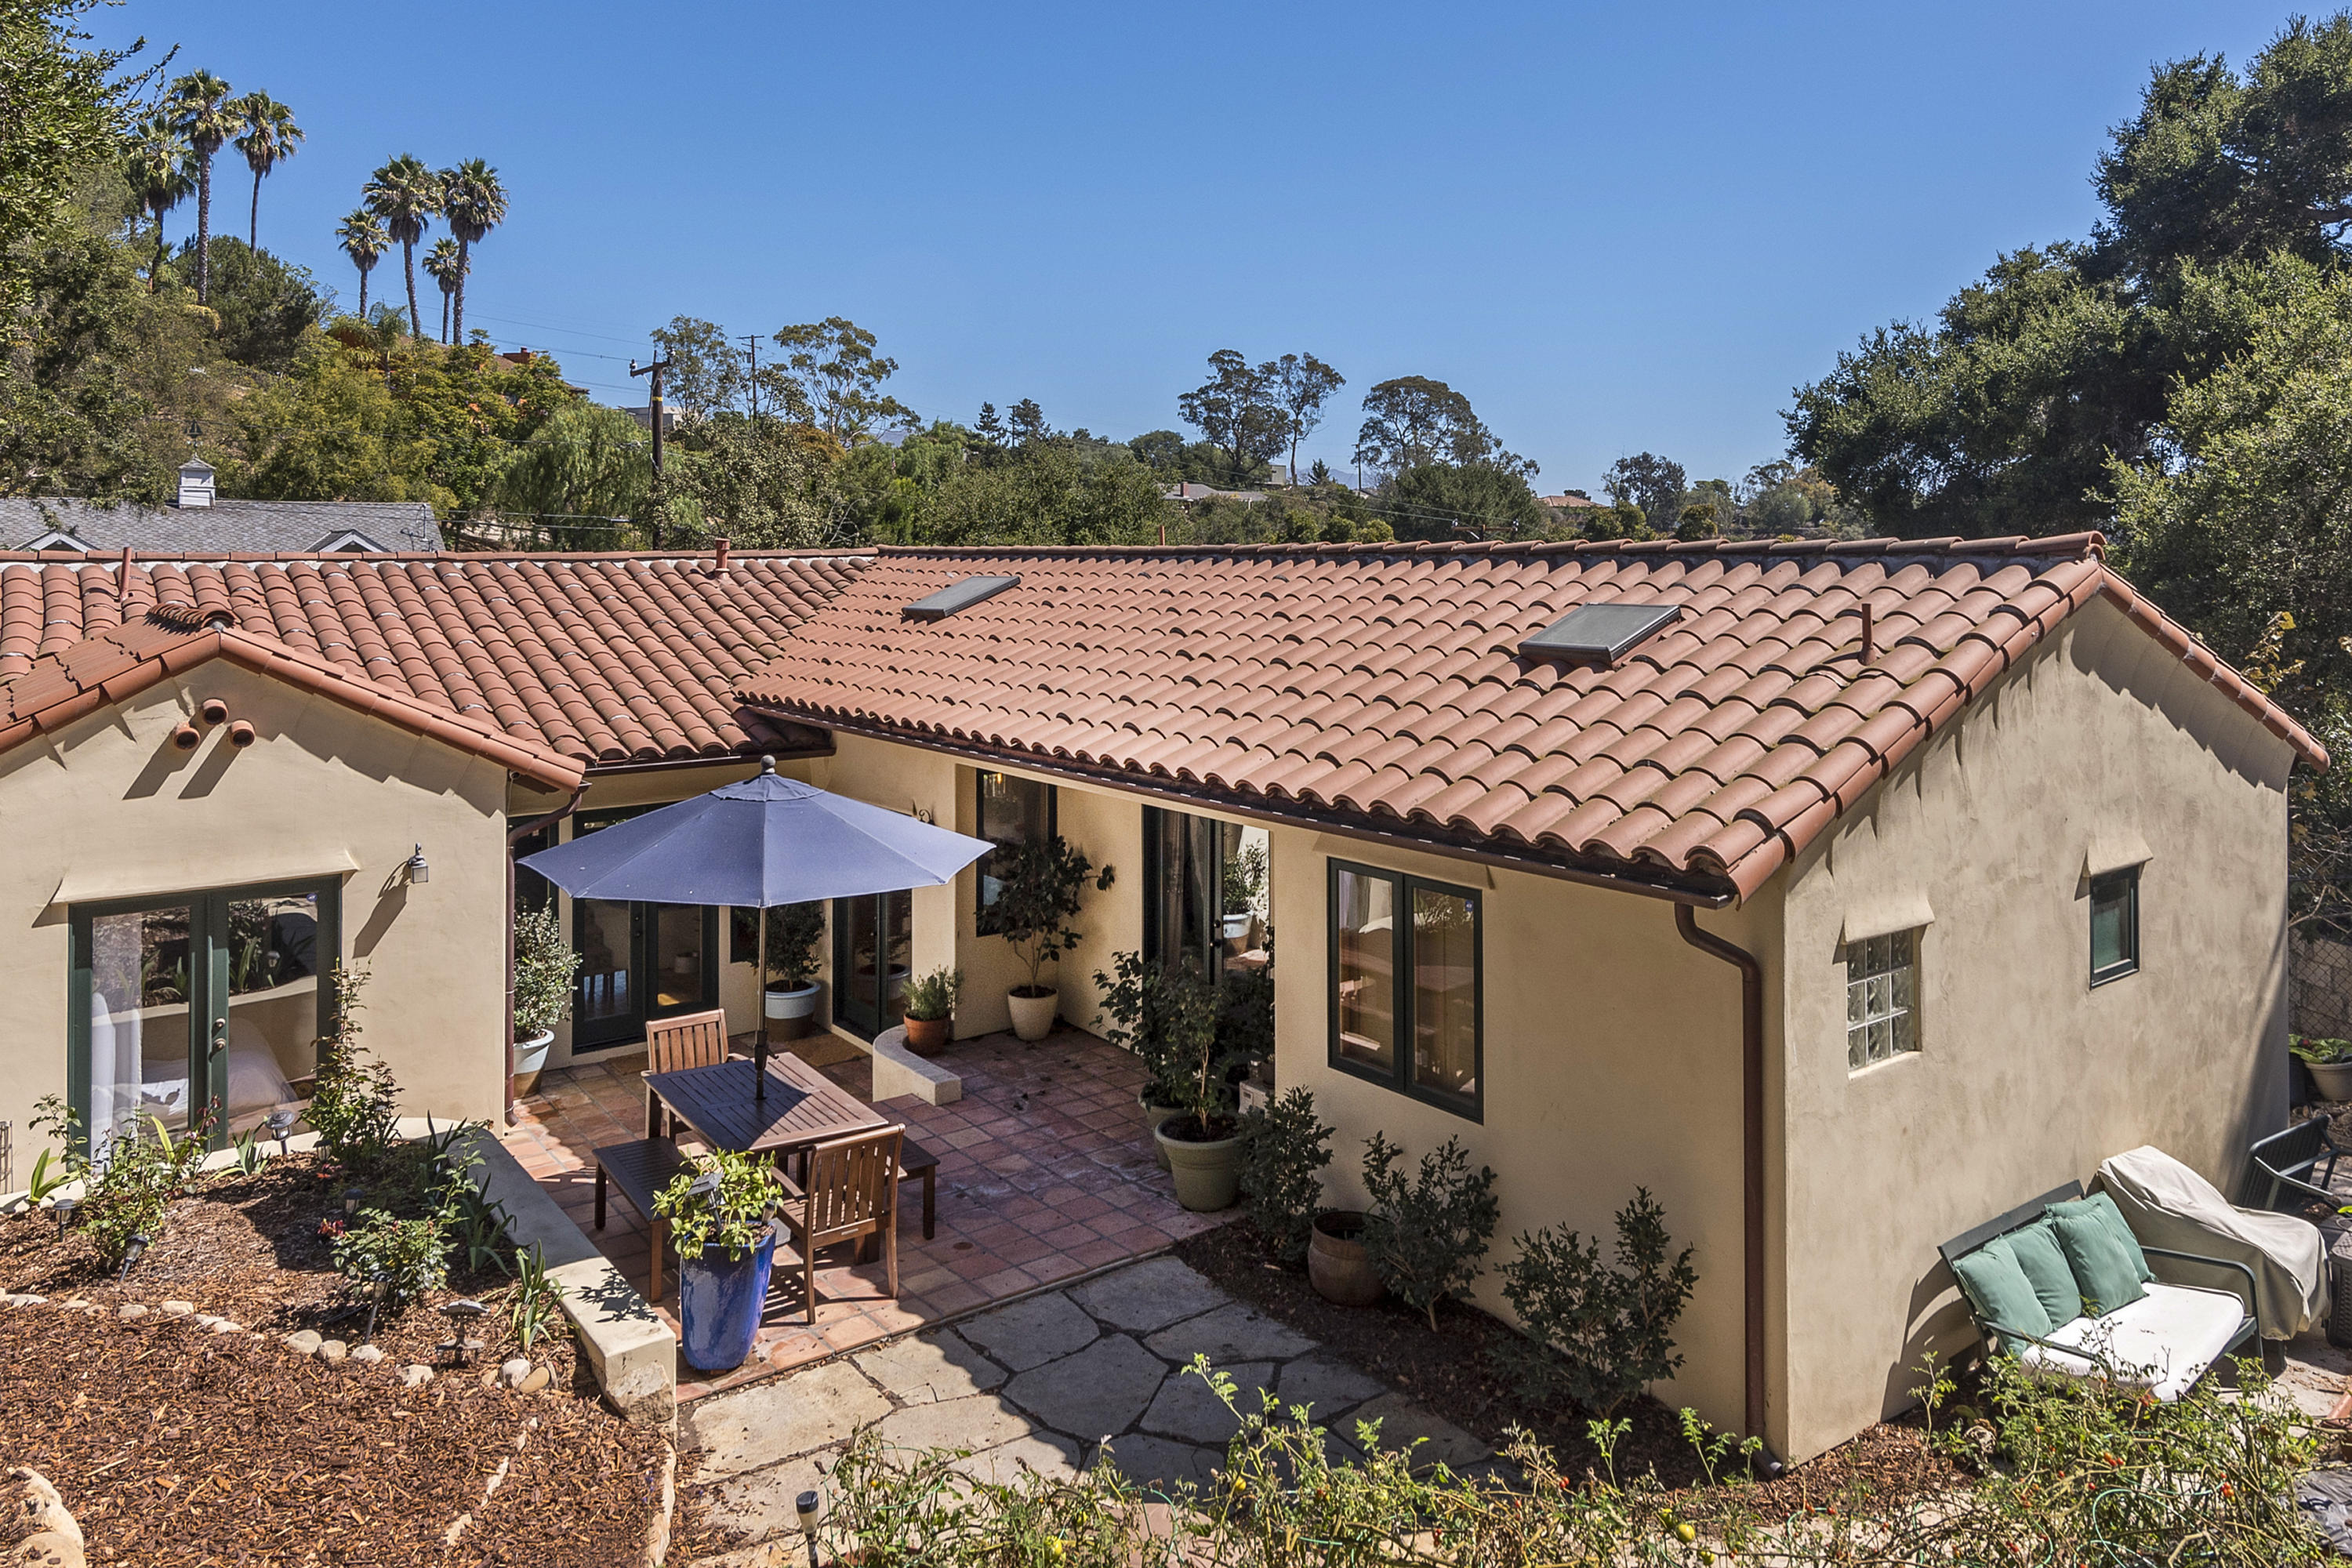 Property photo for 1781 Calle Poniente Santa Barbara, California 93101 - 19-302